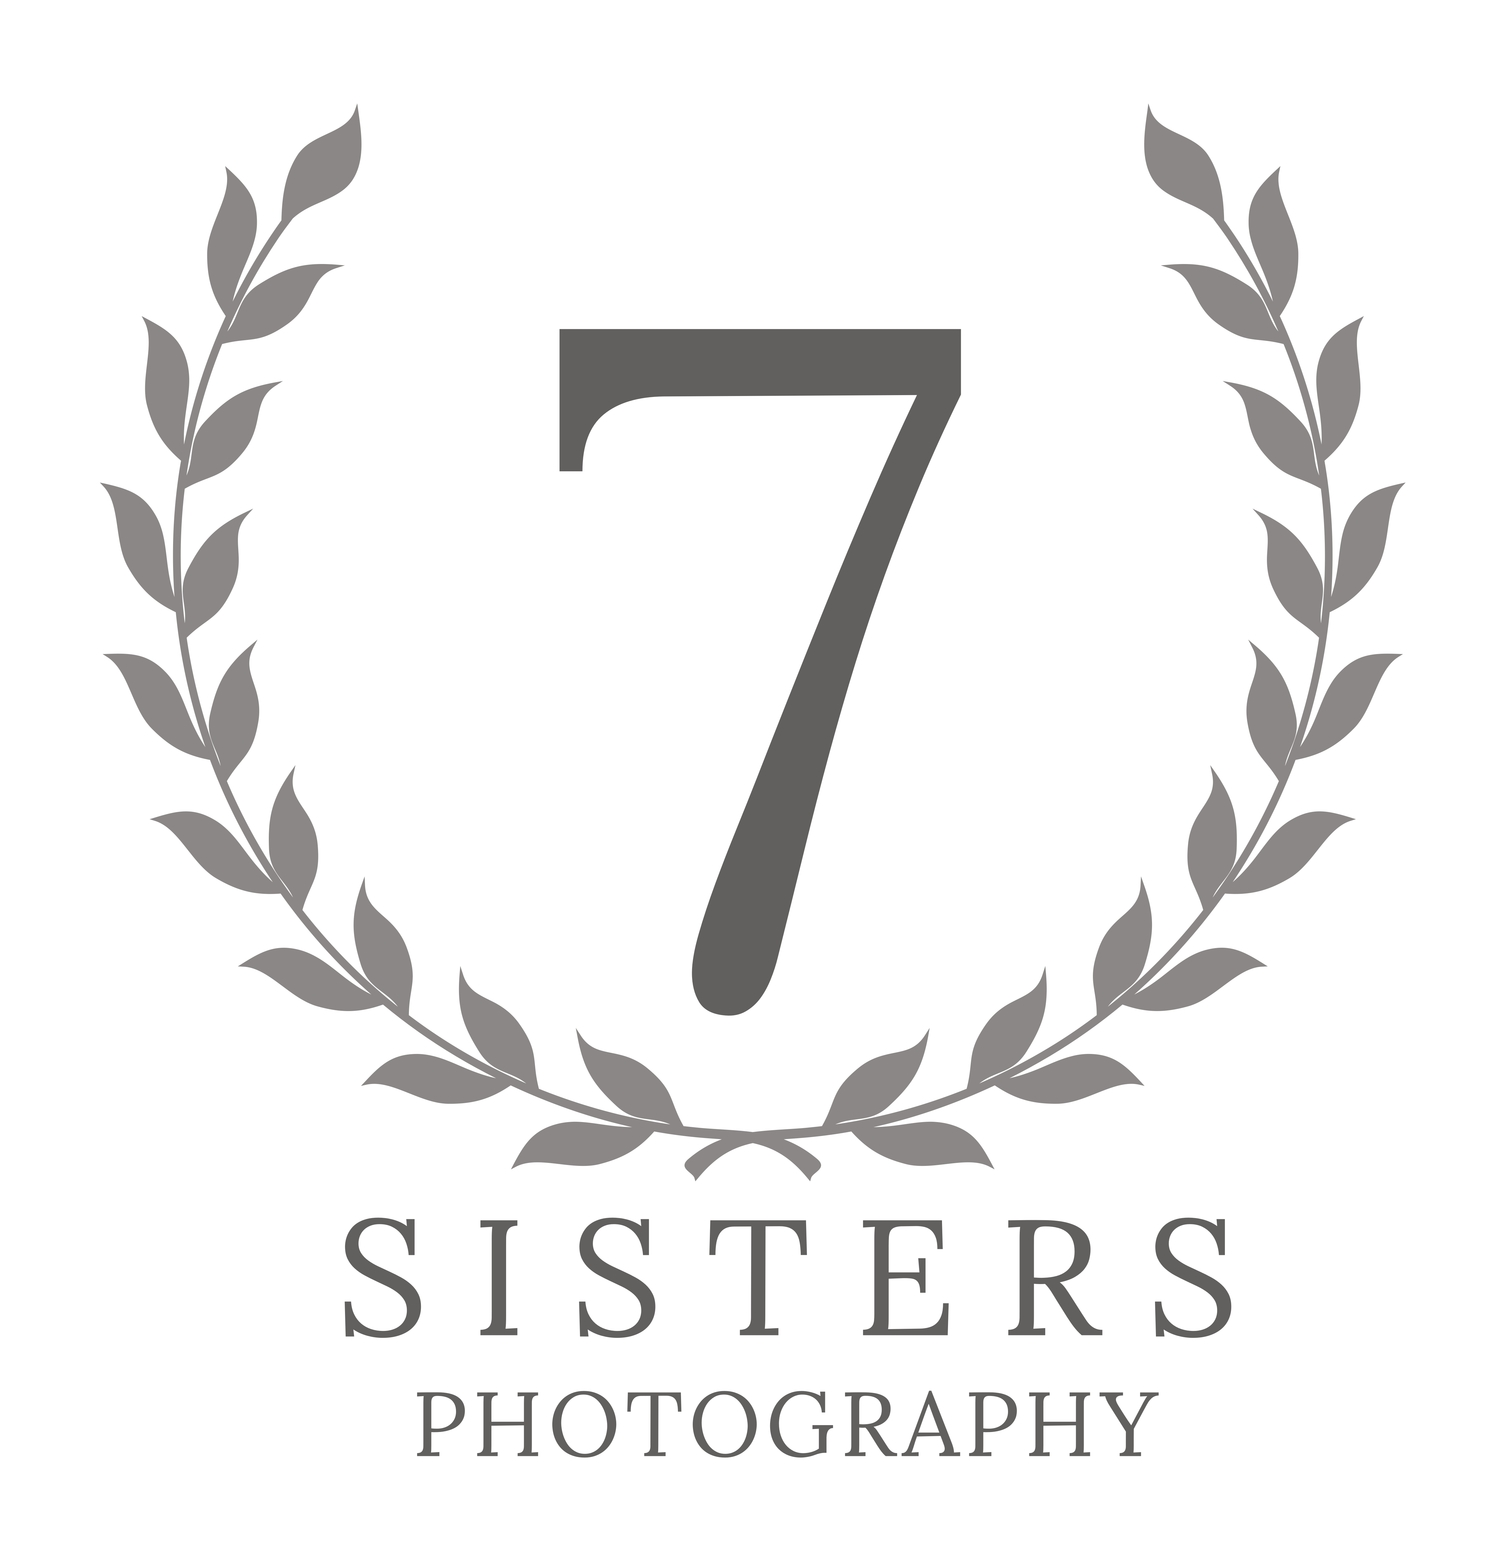 7 Sisters Photography